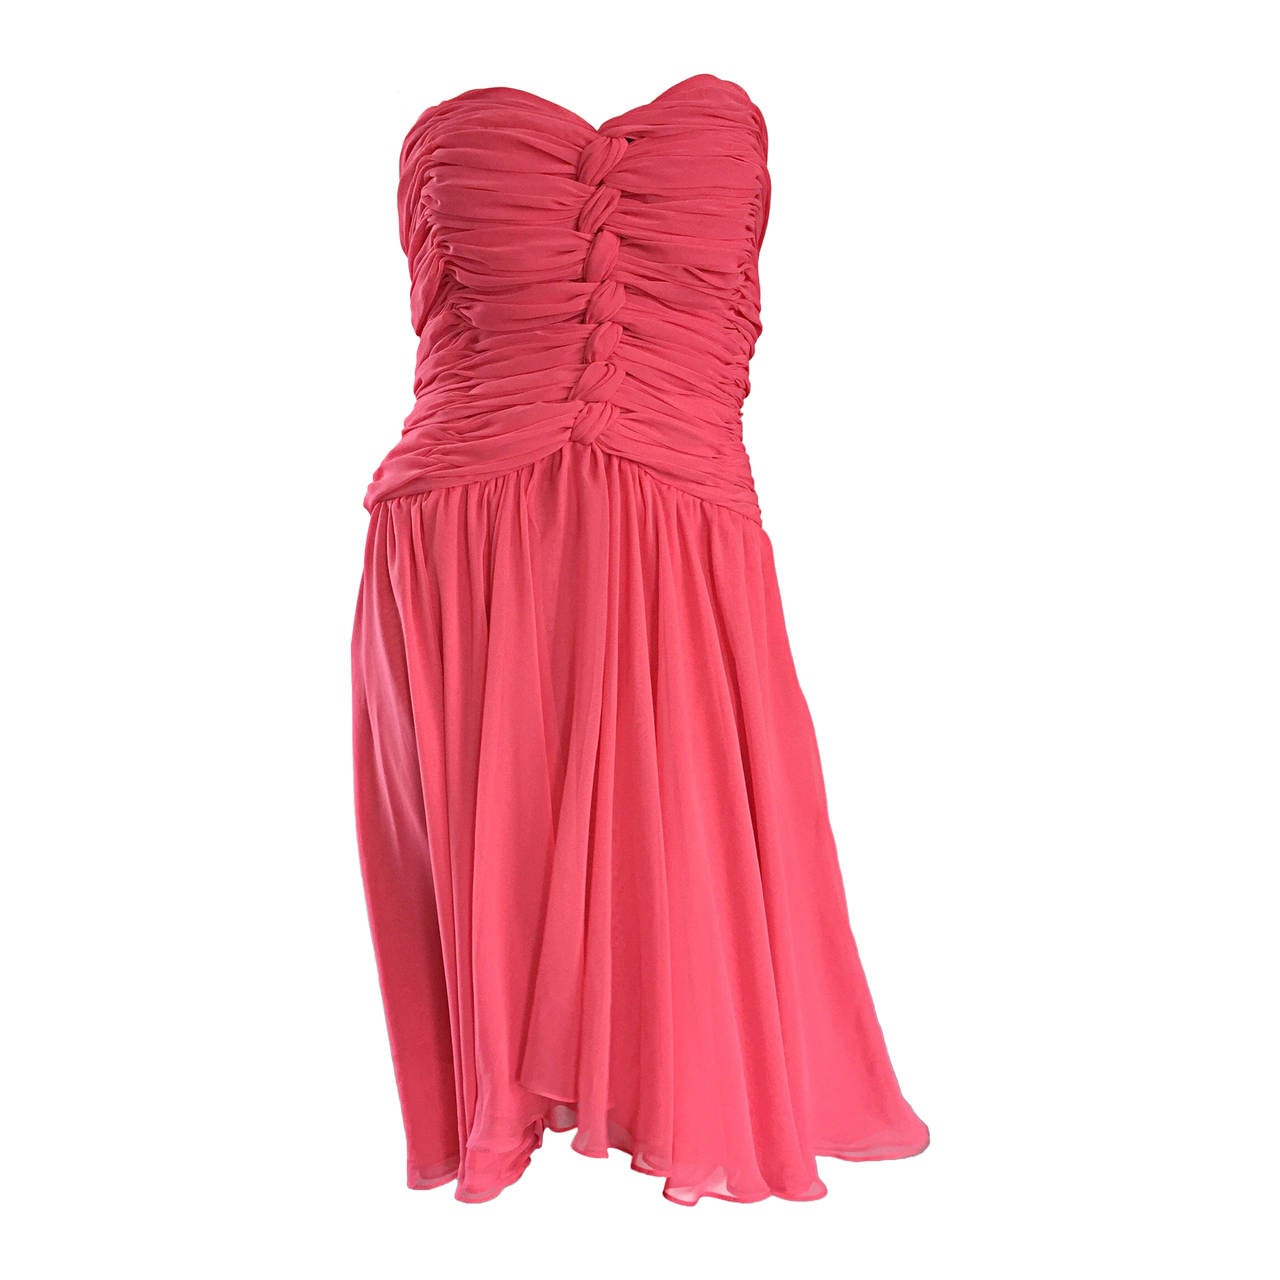 Victor Costa Coral Pink Strapless Flowy Knotted Vintage